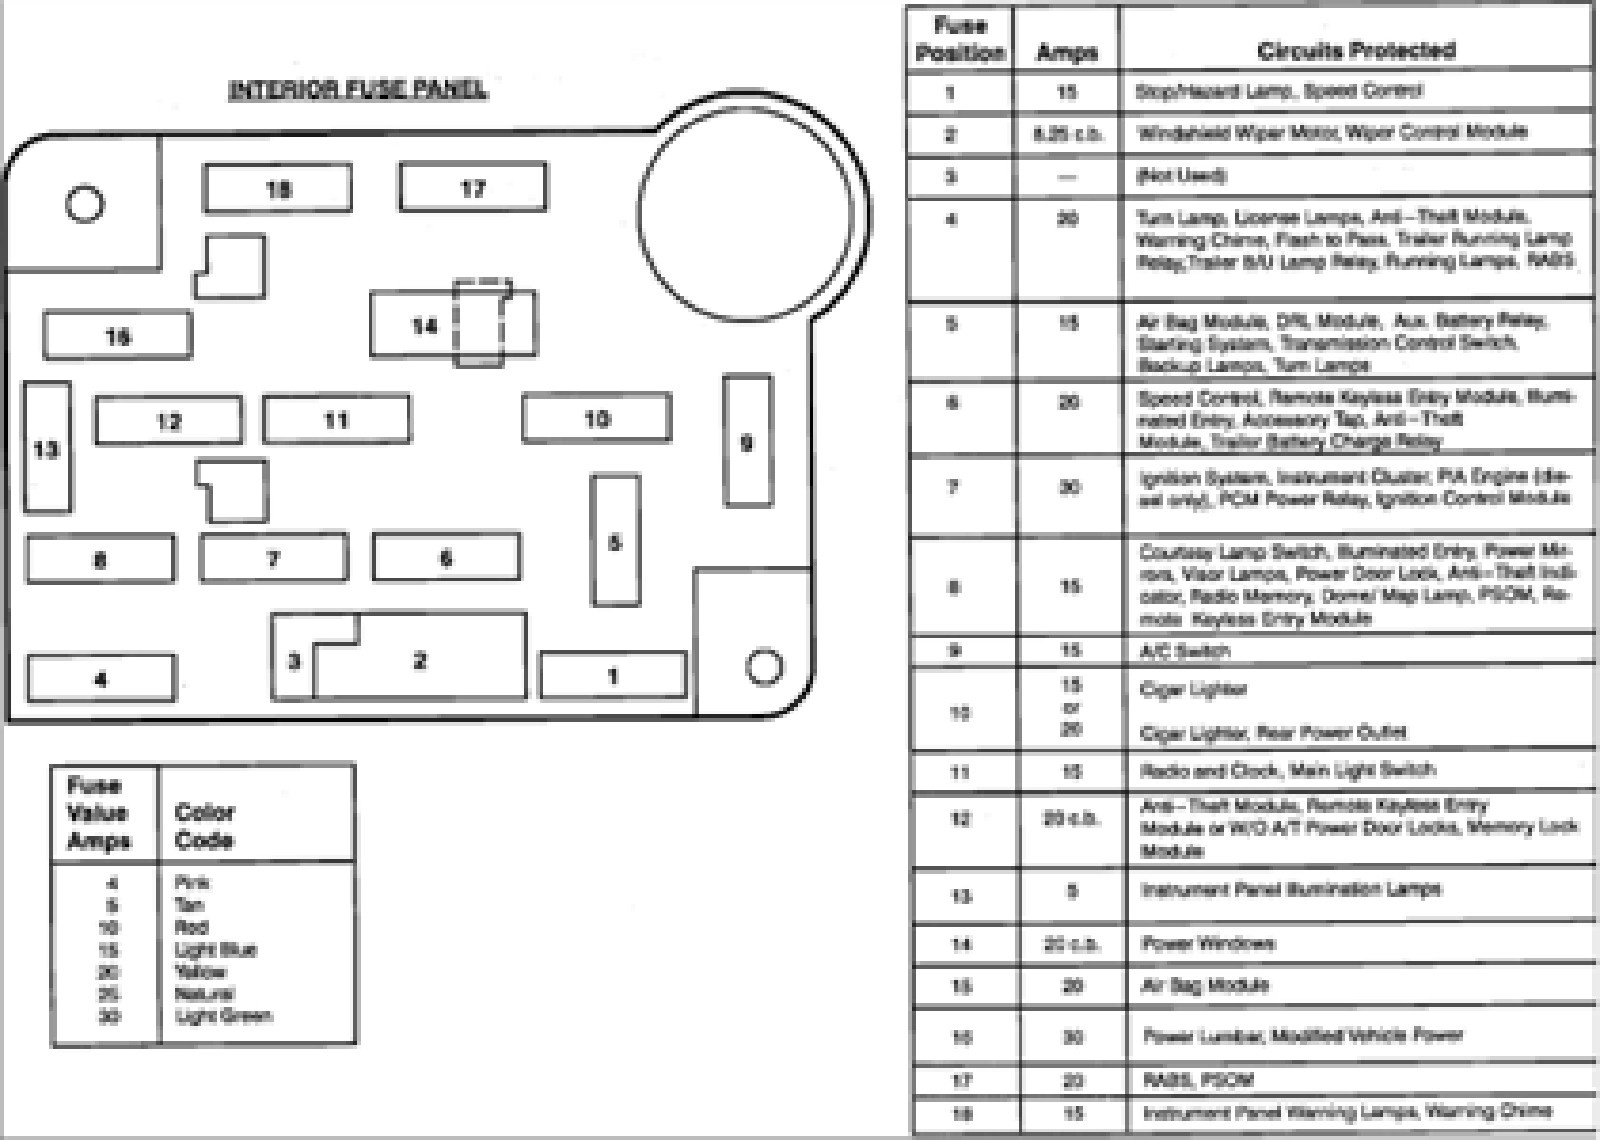 97 thunderbird fuse box electrical diagrams forum u2022 rh woollenkiwi co uk 1995 ford thunderbird fuse box diagram